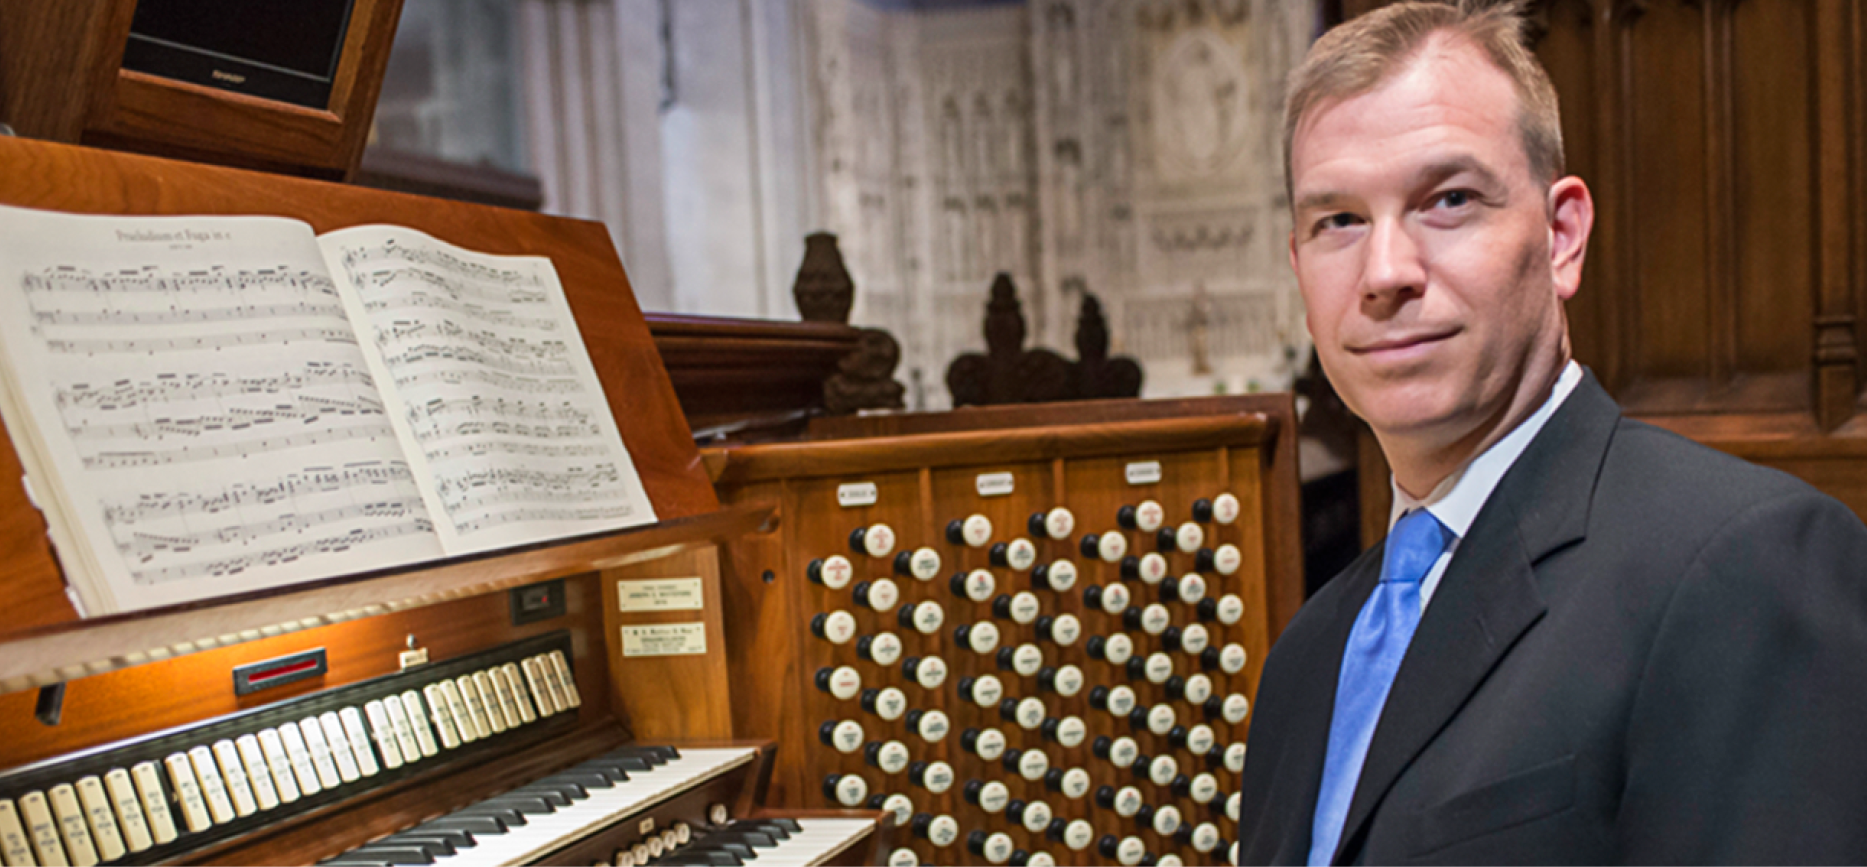 Madison Symphony Orchestra - Organist Erik Wm. Suter in Recital